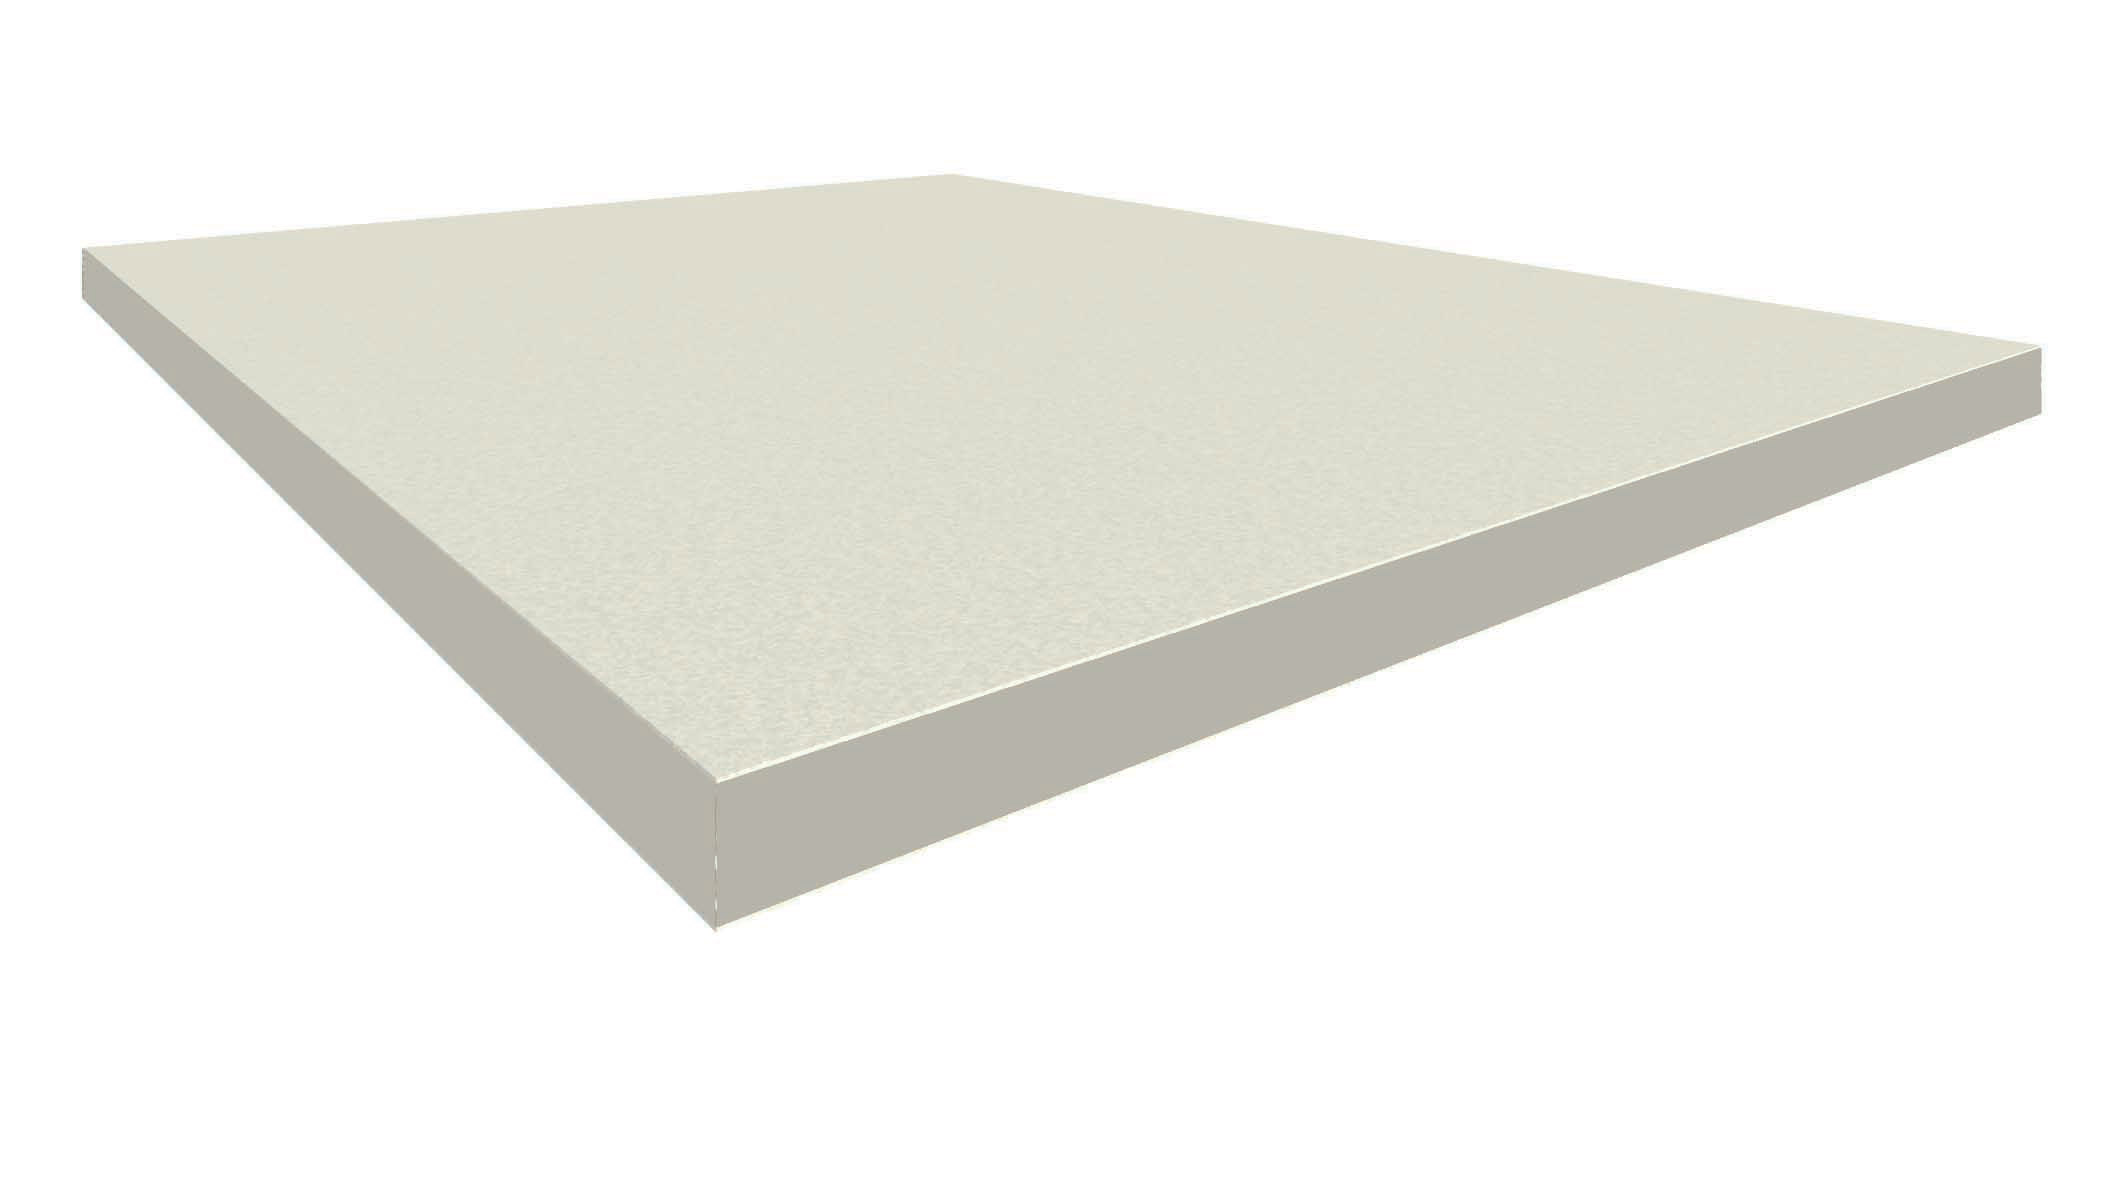 GYPSOTECH® EXTERNA LIGHT: Cement board